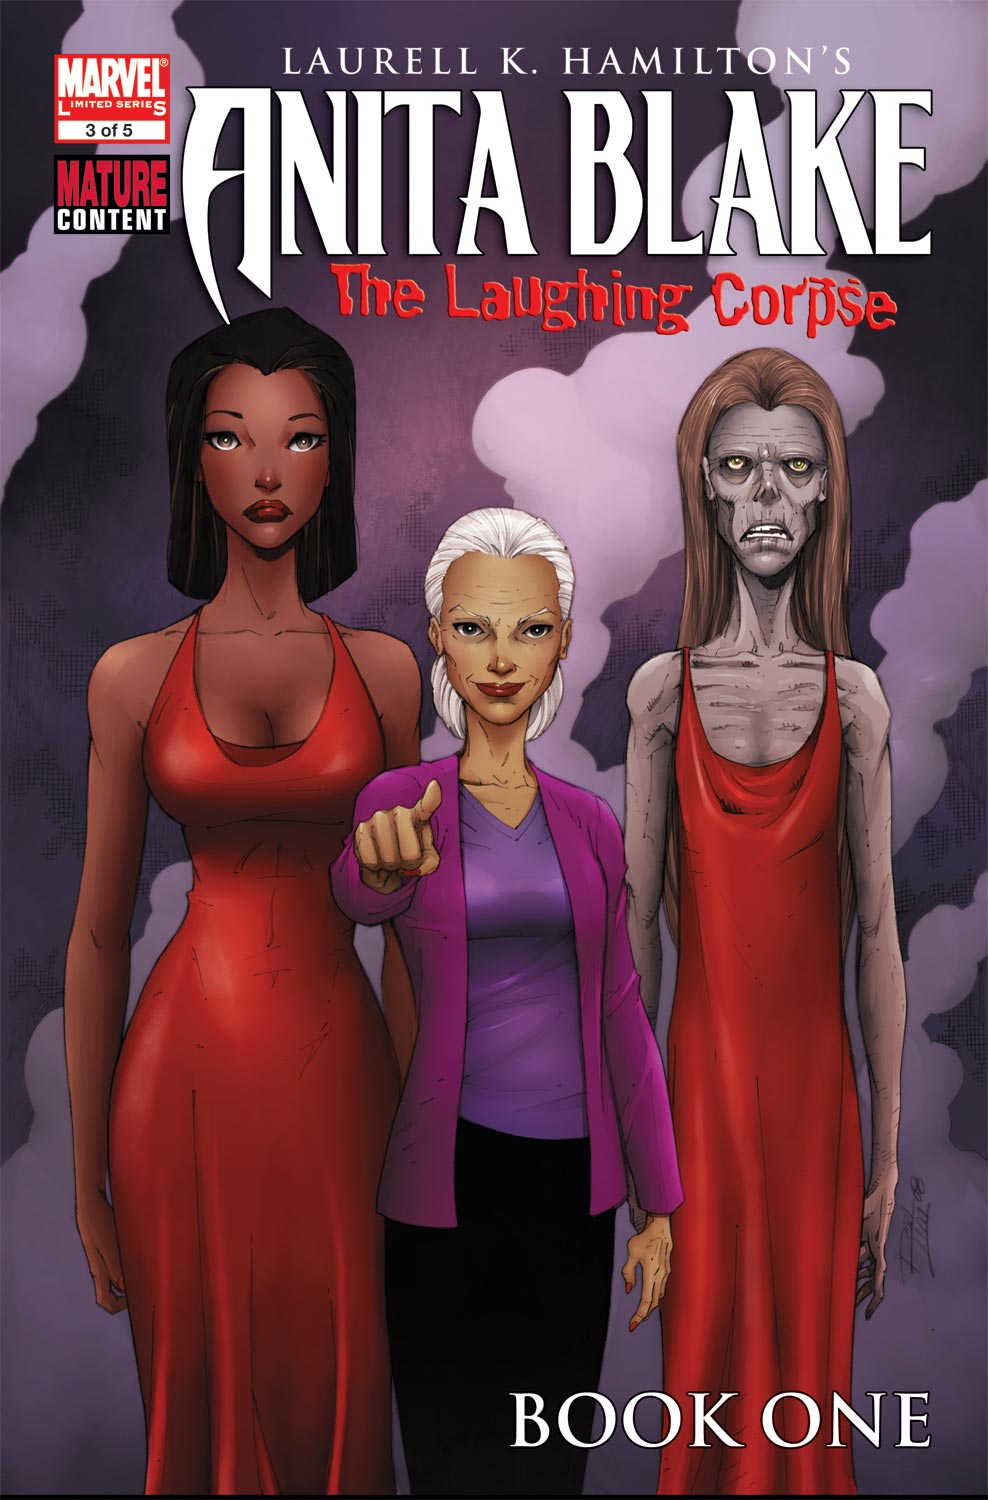 Anita Blake, Vampire Hunter: The Laughing Corpse Book 1 - Animator (Hardcover)